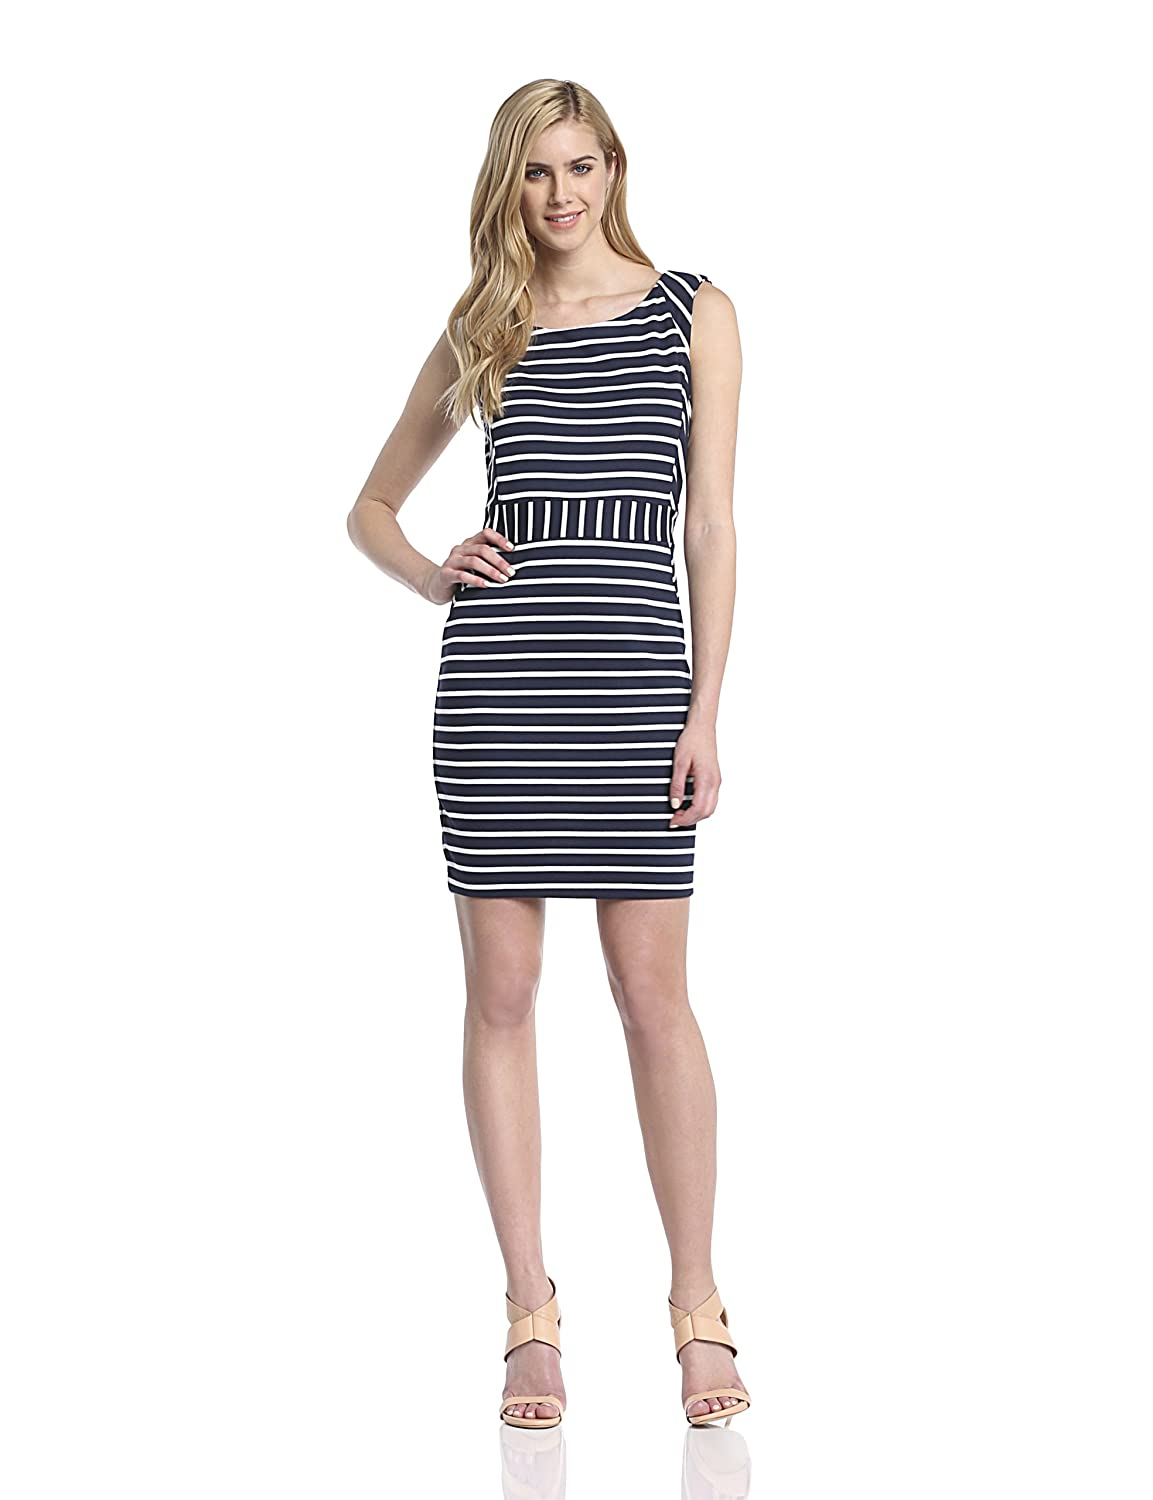 Morgan Damen  Taille empireKleid Blau Marine